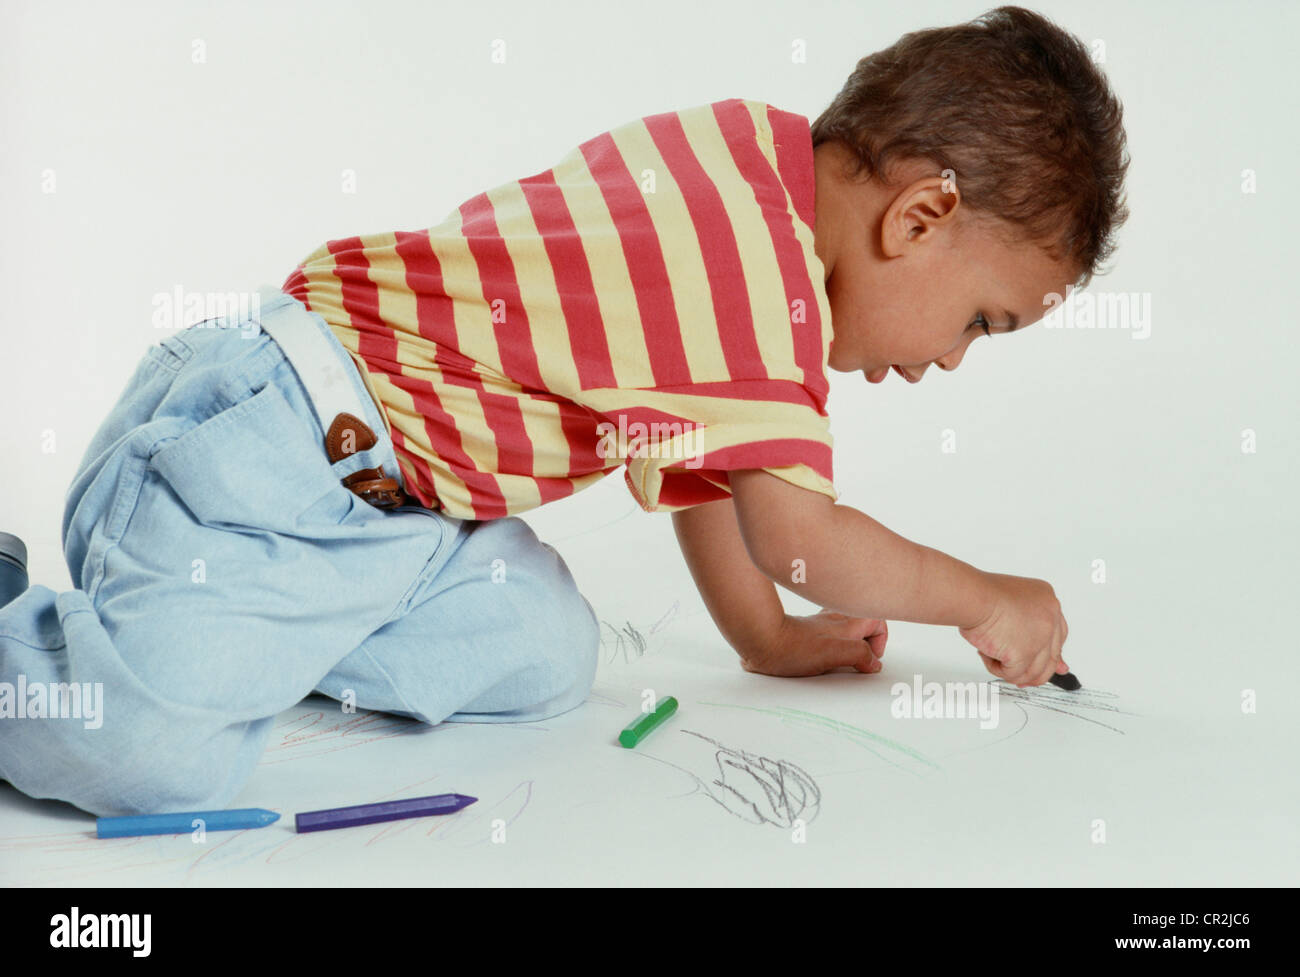 Three Year Old Mixed Race Boy Coloring With Crayons